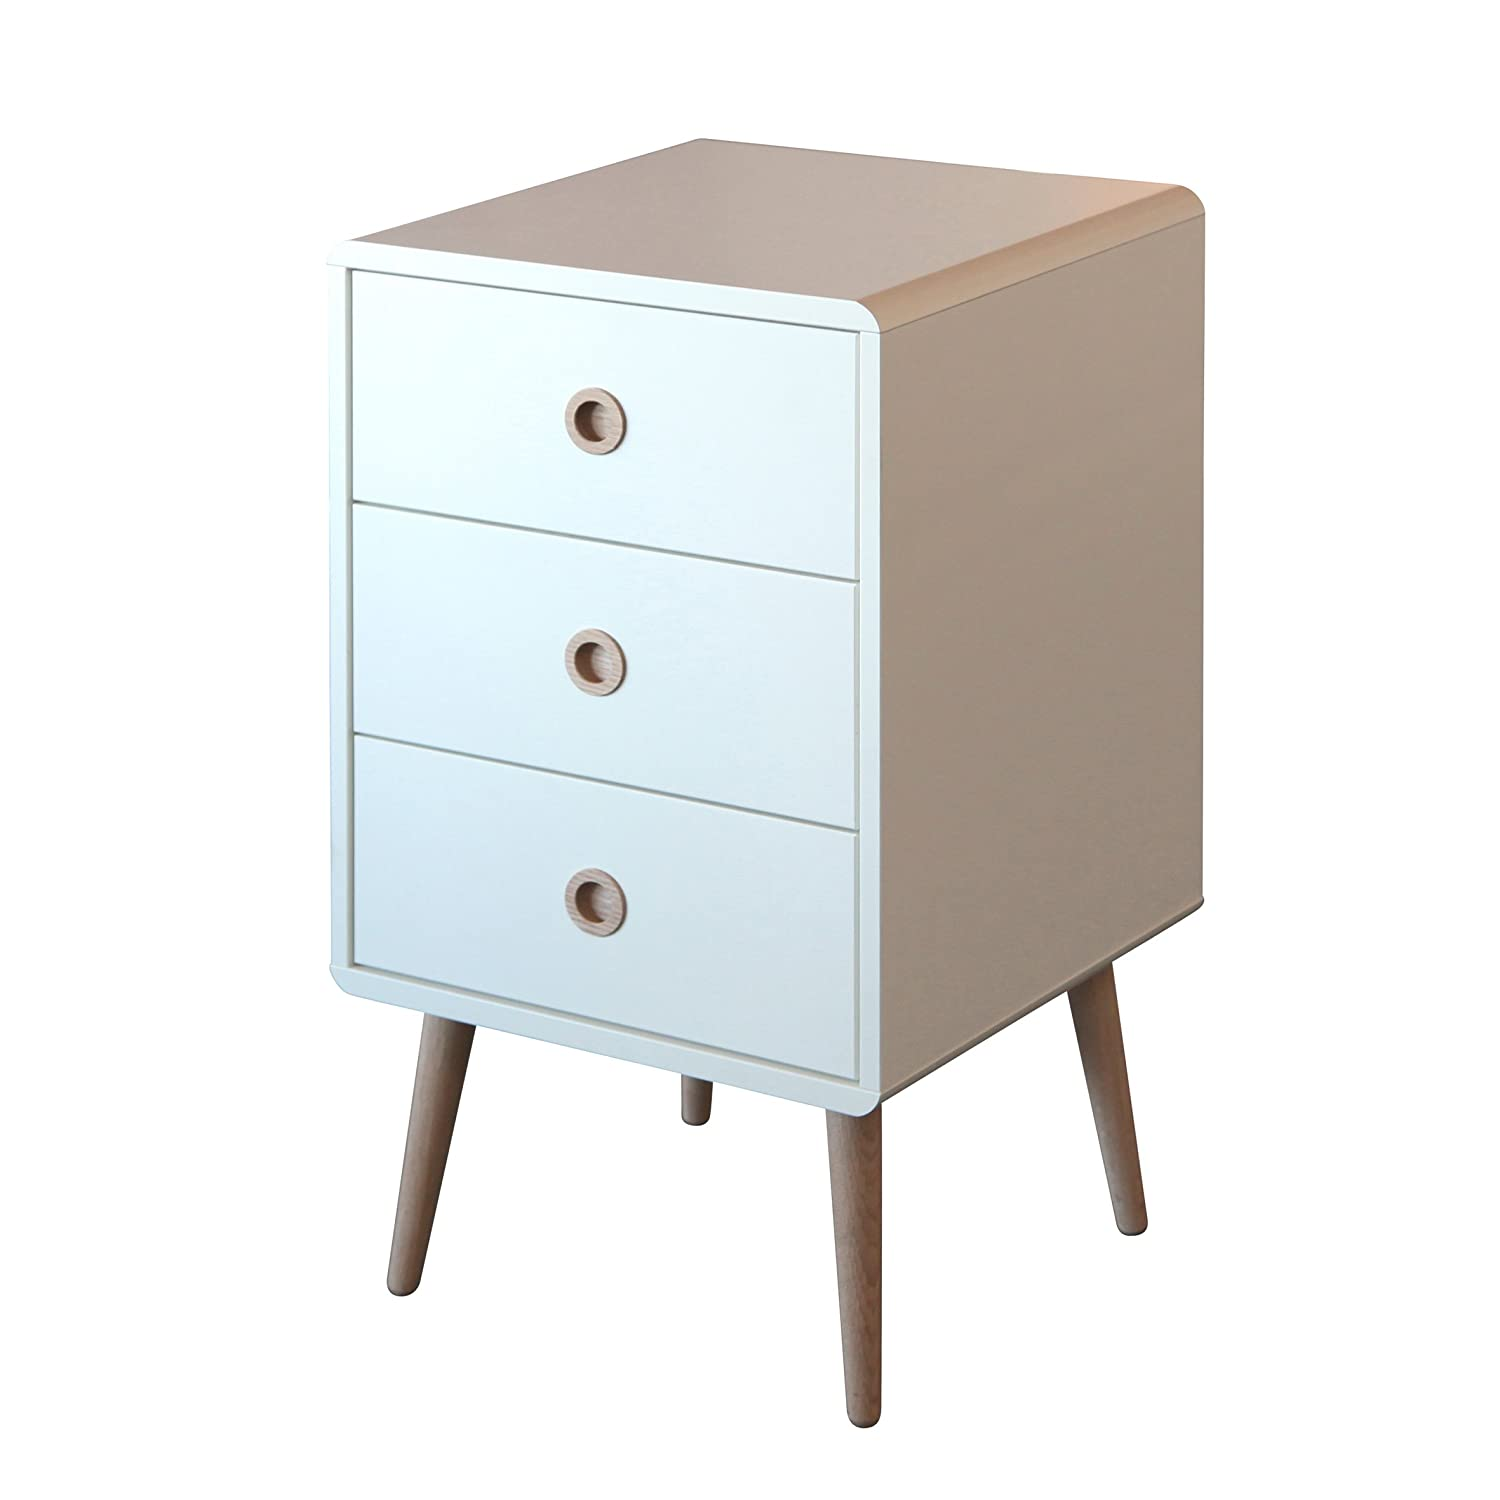 Steens Soft Line 3-Drawer Bedside, White: Amazon.co.uk: Kitchen & Home